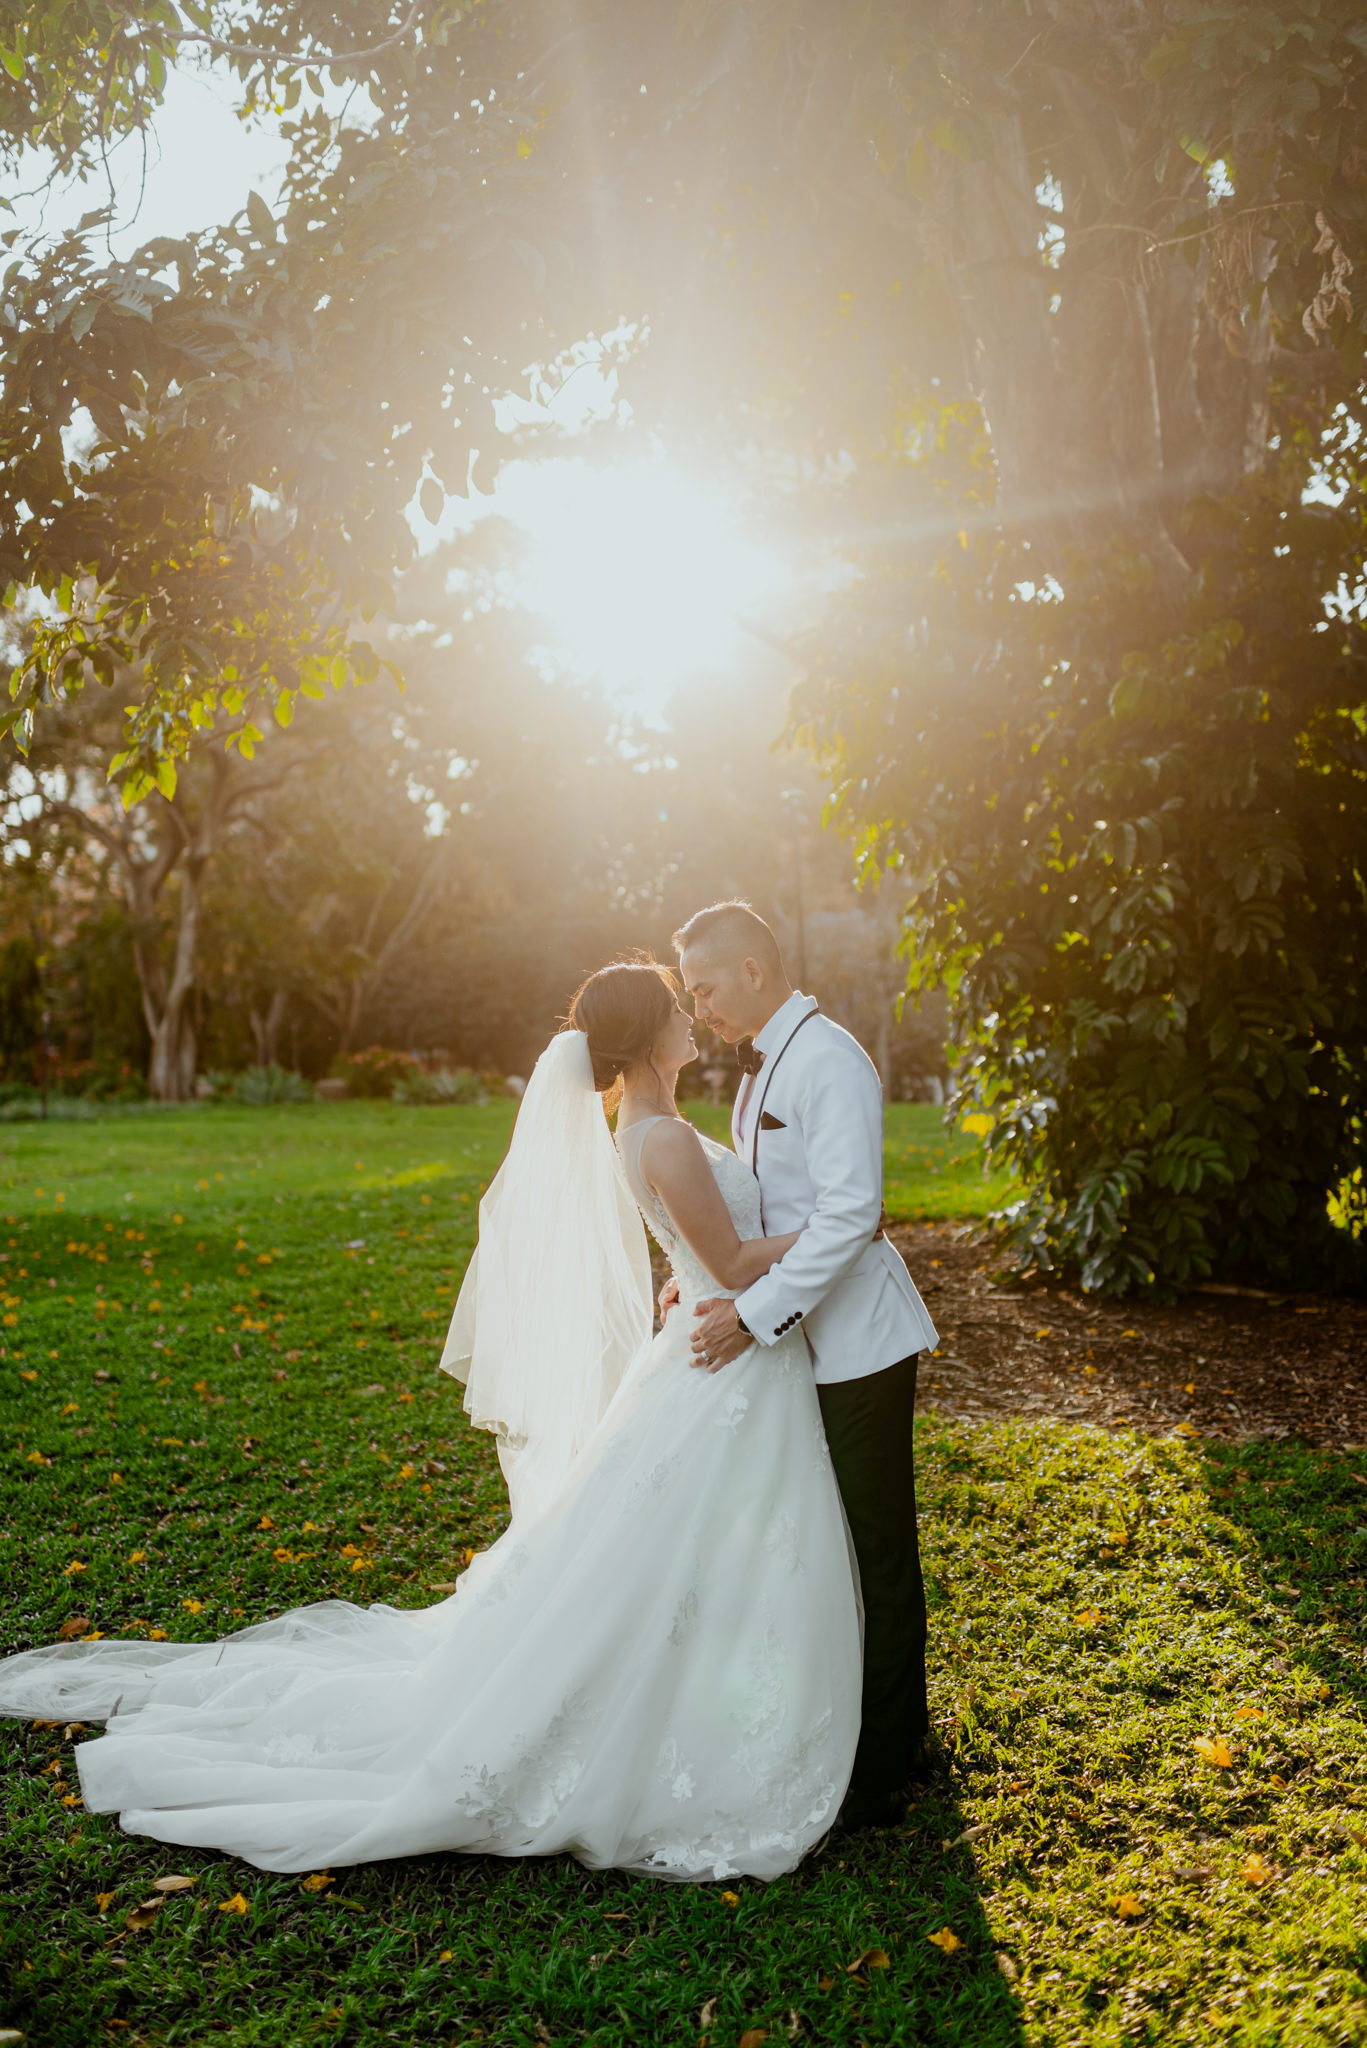 Golden sunlight shines through trees and on a bride and groom